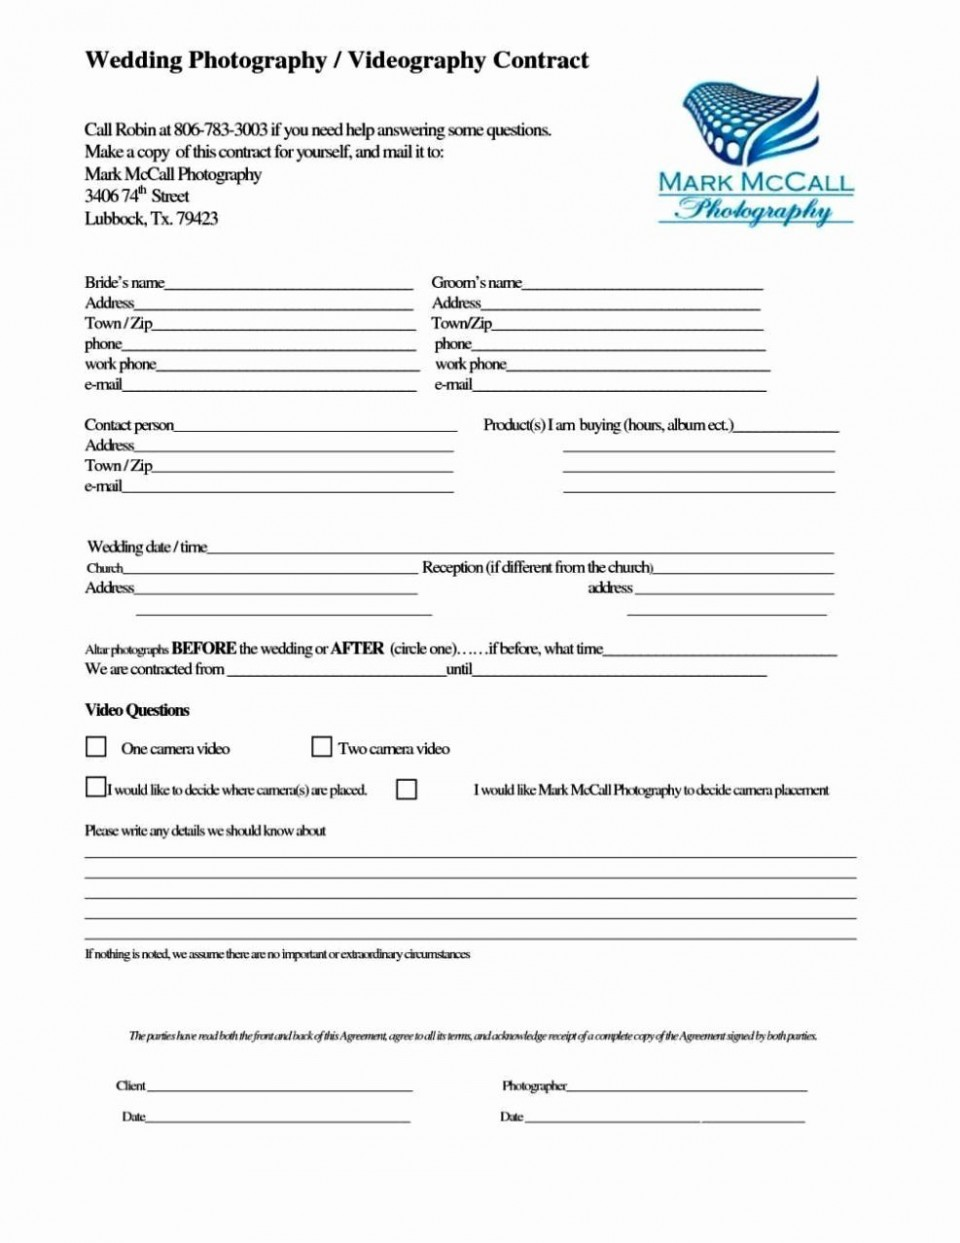 000 Unusual Wedding Videography Contract Template High Resolution  Pdf Example Word960